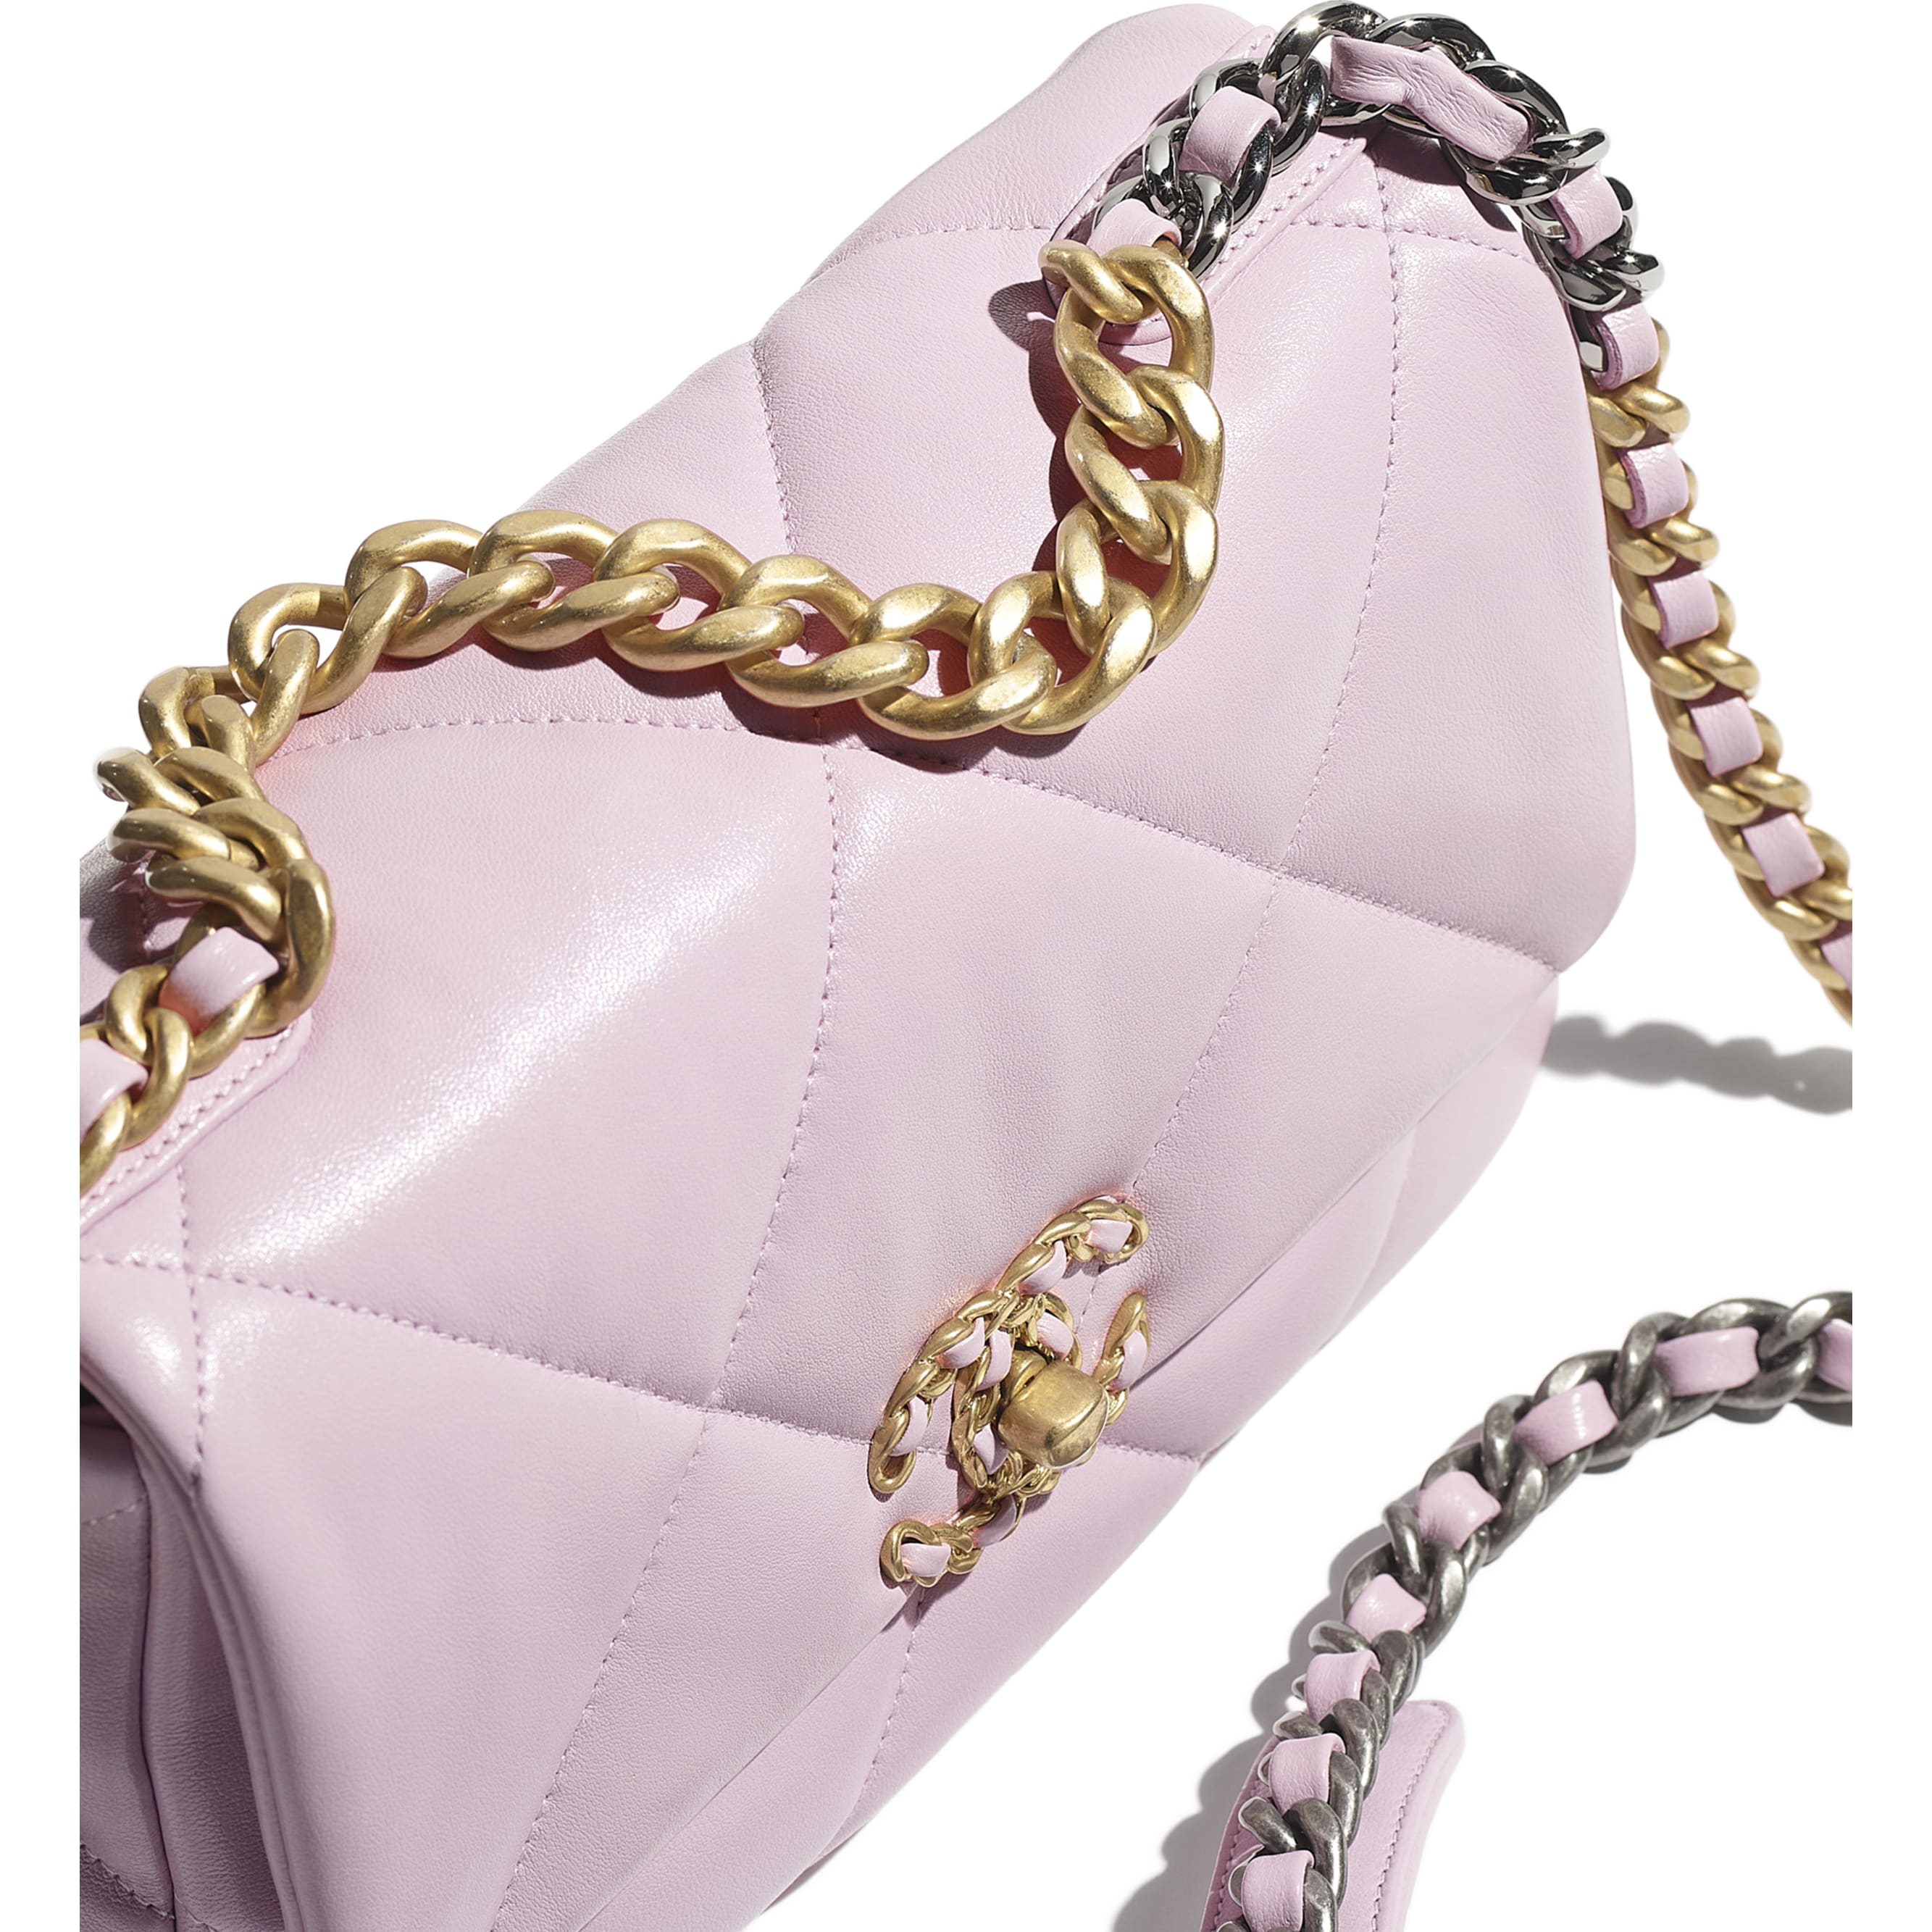 CHANEL 19 Handbag - Light Pink - Lambskin, Gold-Tone, Silver-Tone & Ruthenium-Finish Metal - CHANEL - Extra view - see standard sized version